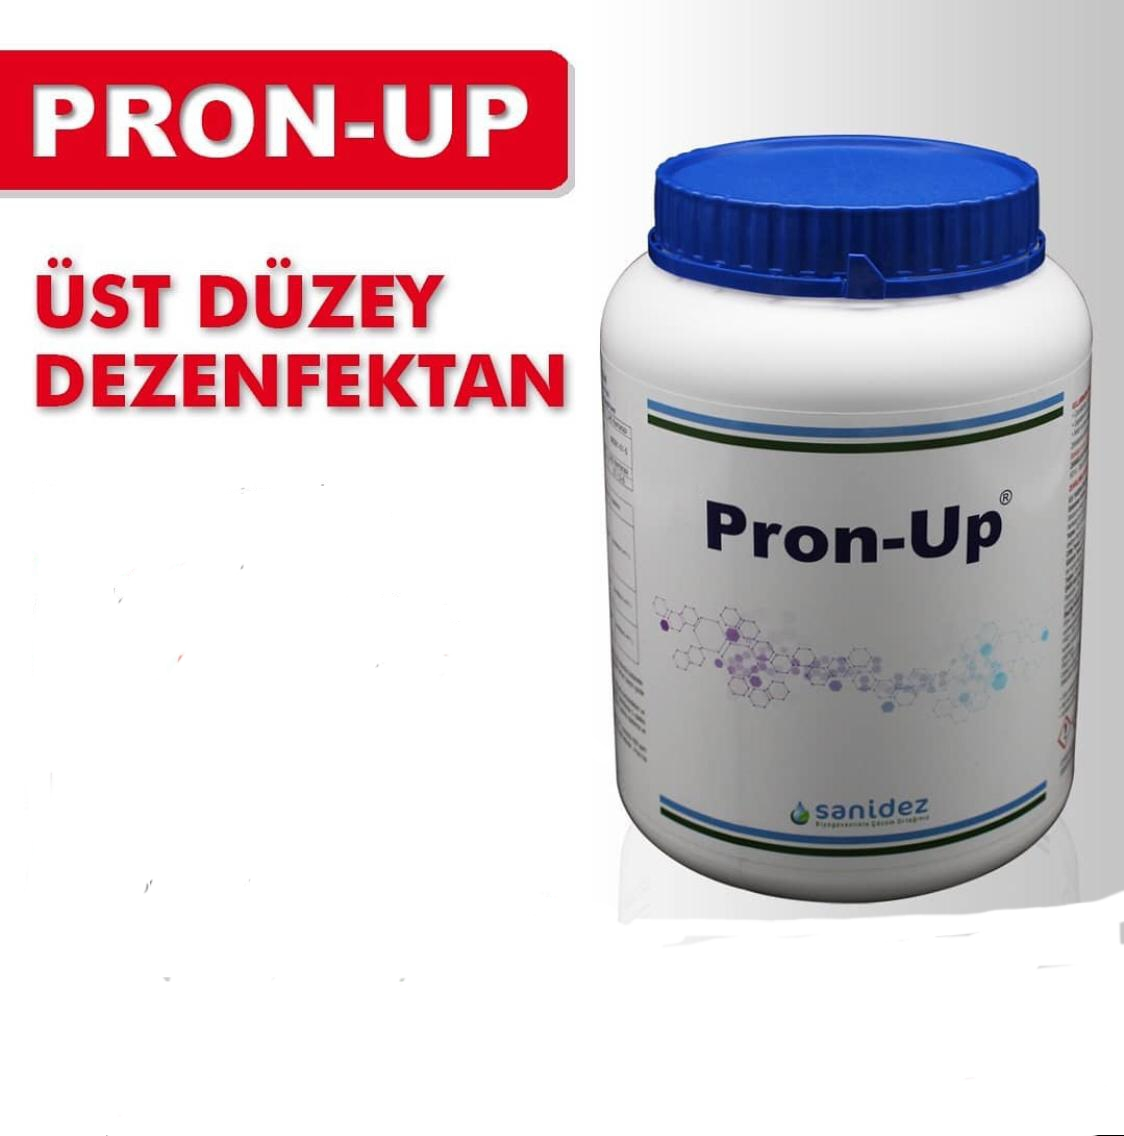 Pron-up dezenfektan